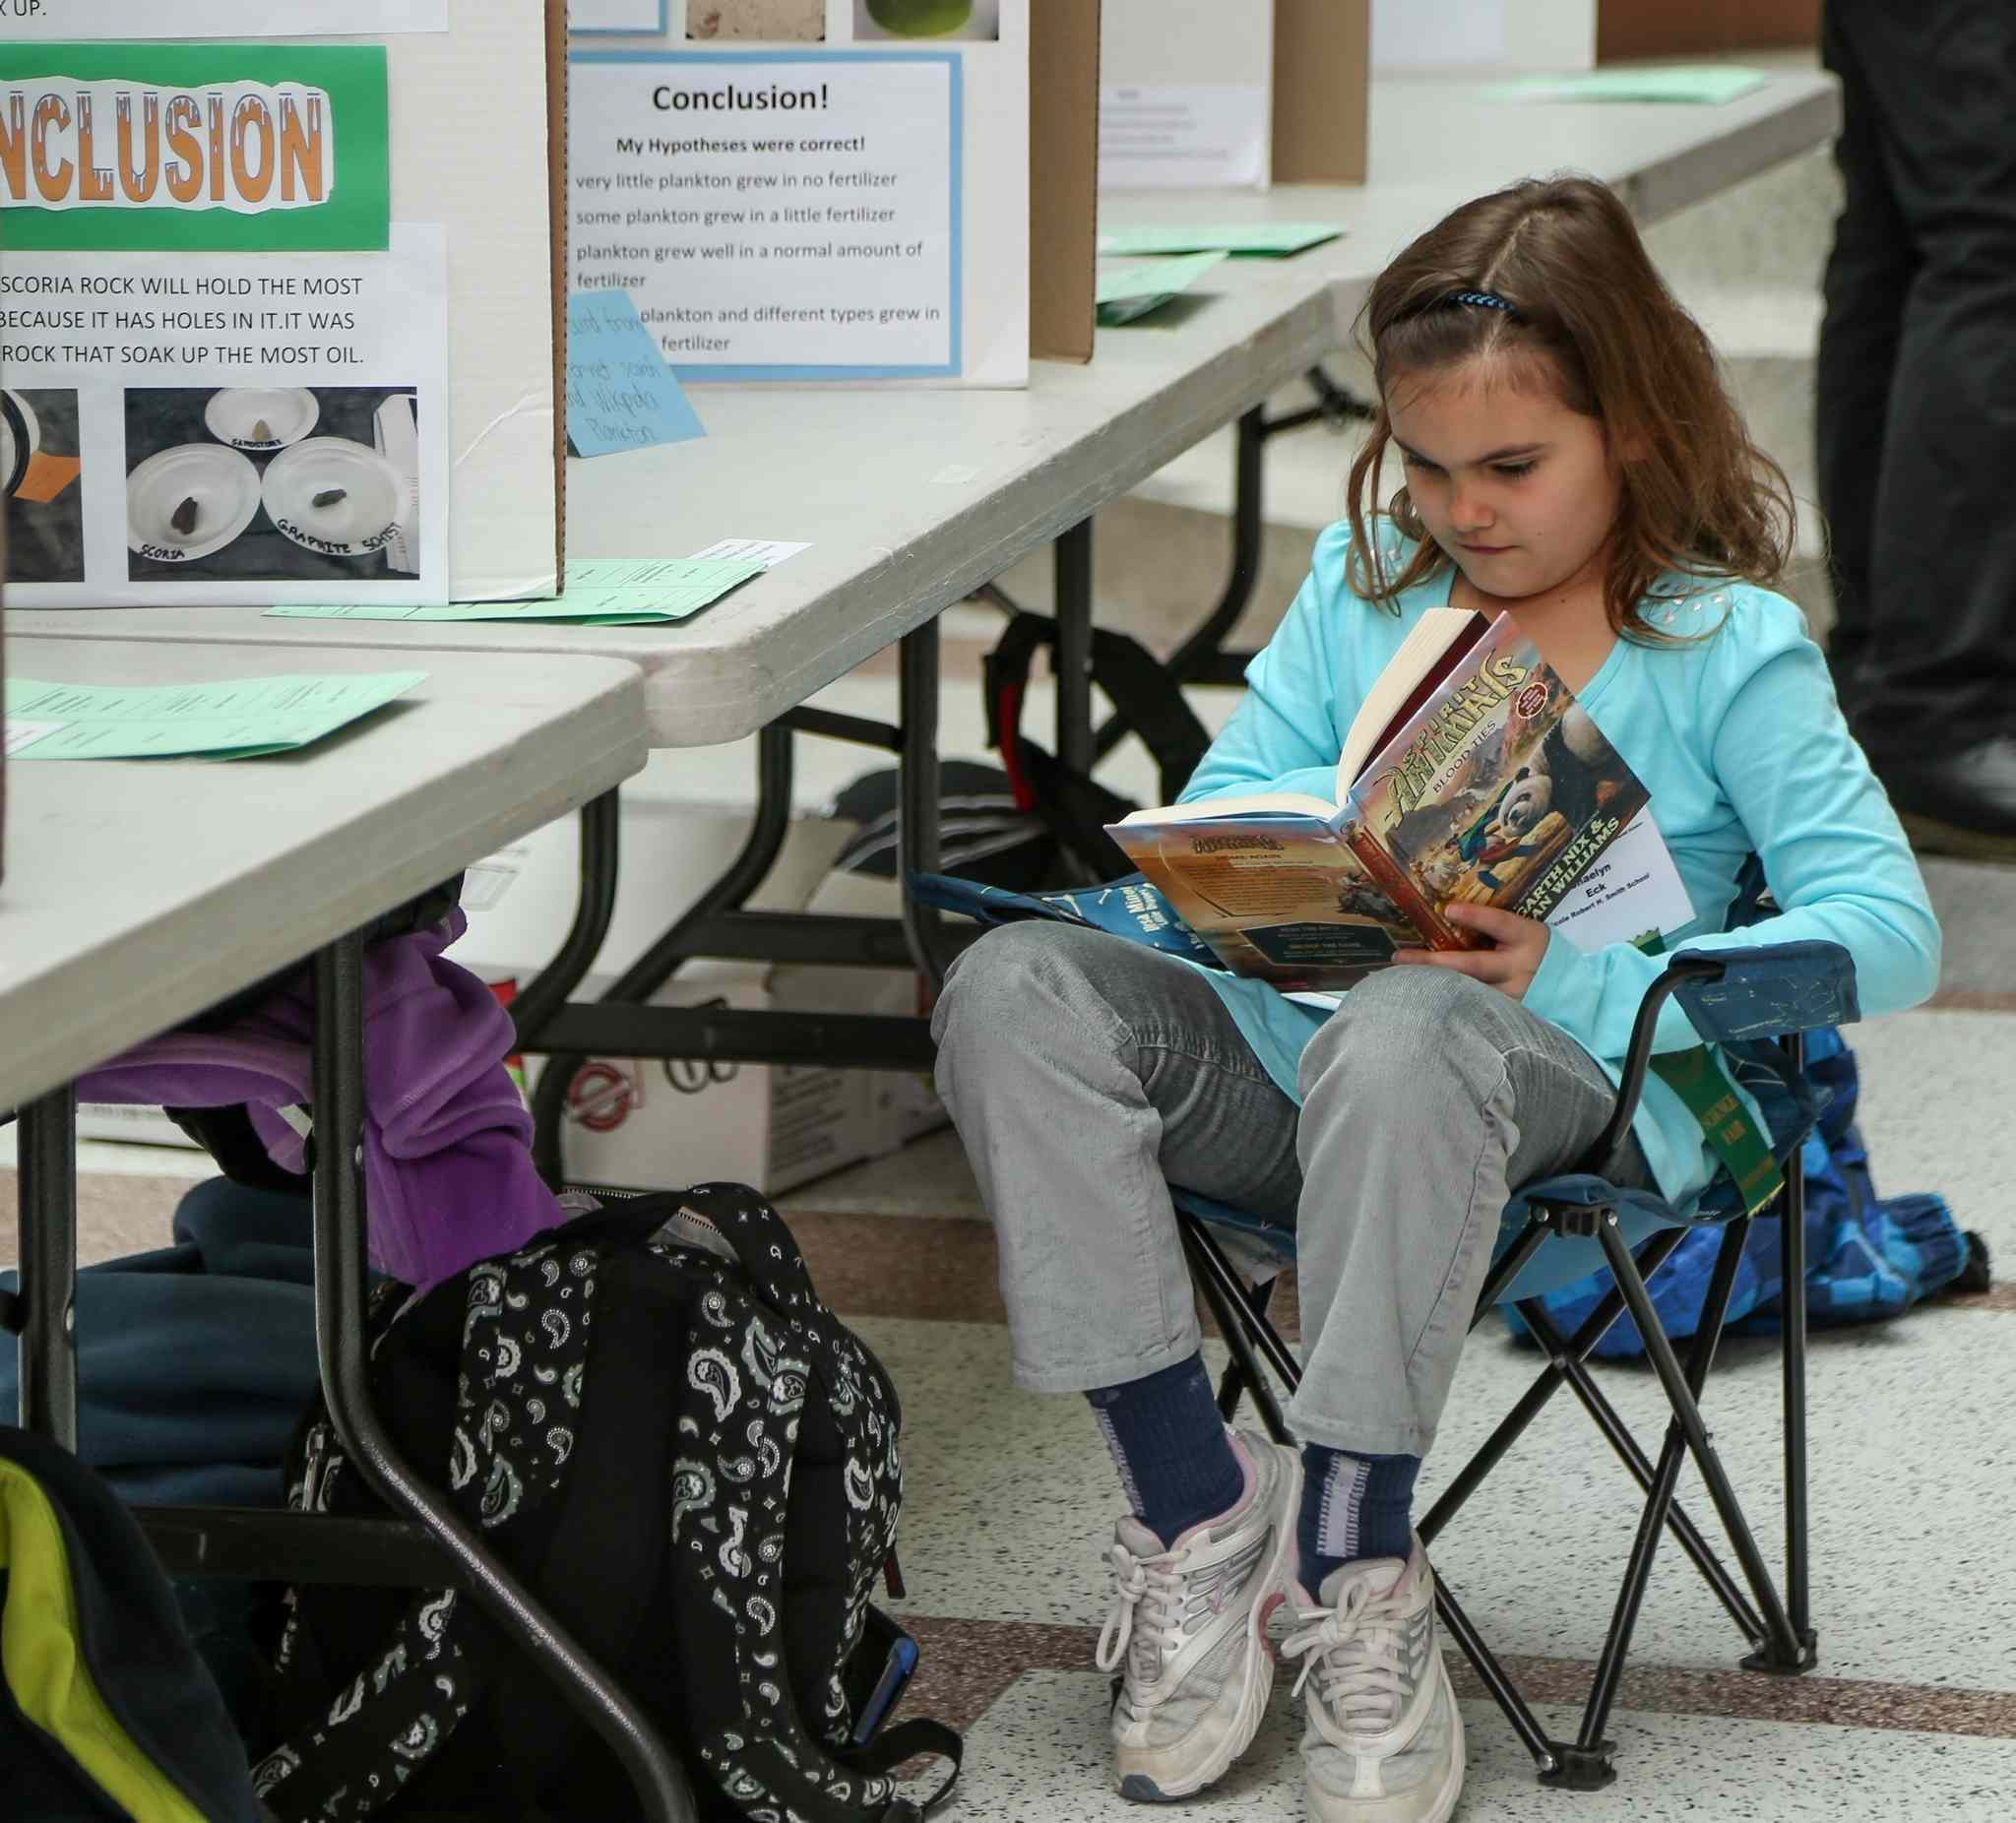 Shaelyn Eck, a Grade 4 student at Ecole Robert H. School, can't get enough learning in as she sits at her science fair display at the 44th Annual Winnipeg Schools' Science Fair at the University of Manitoba on Wednesday.